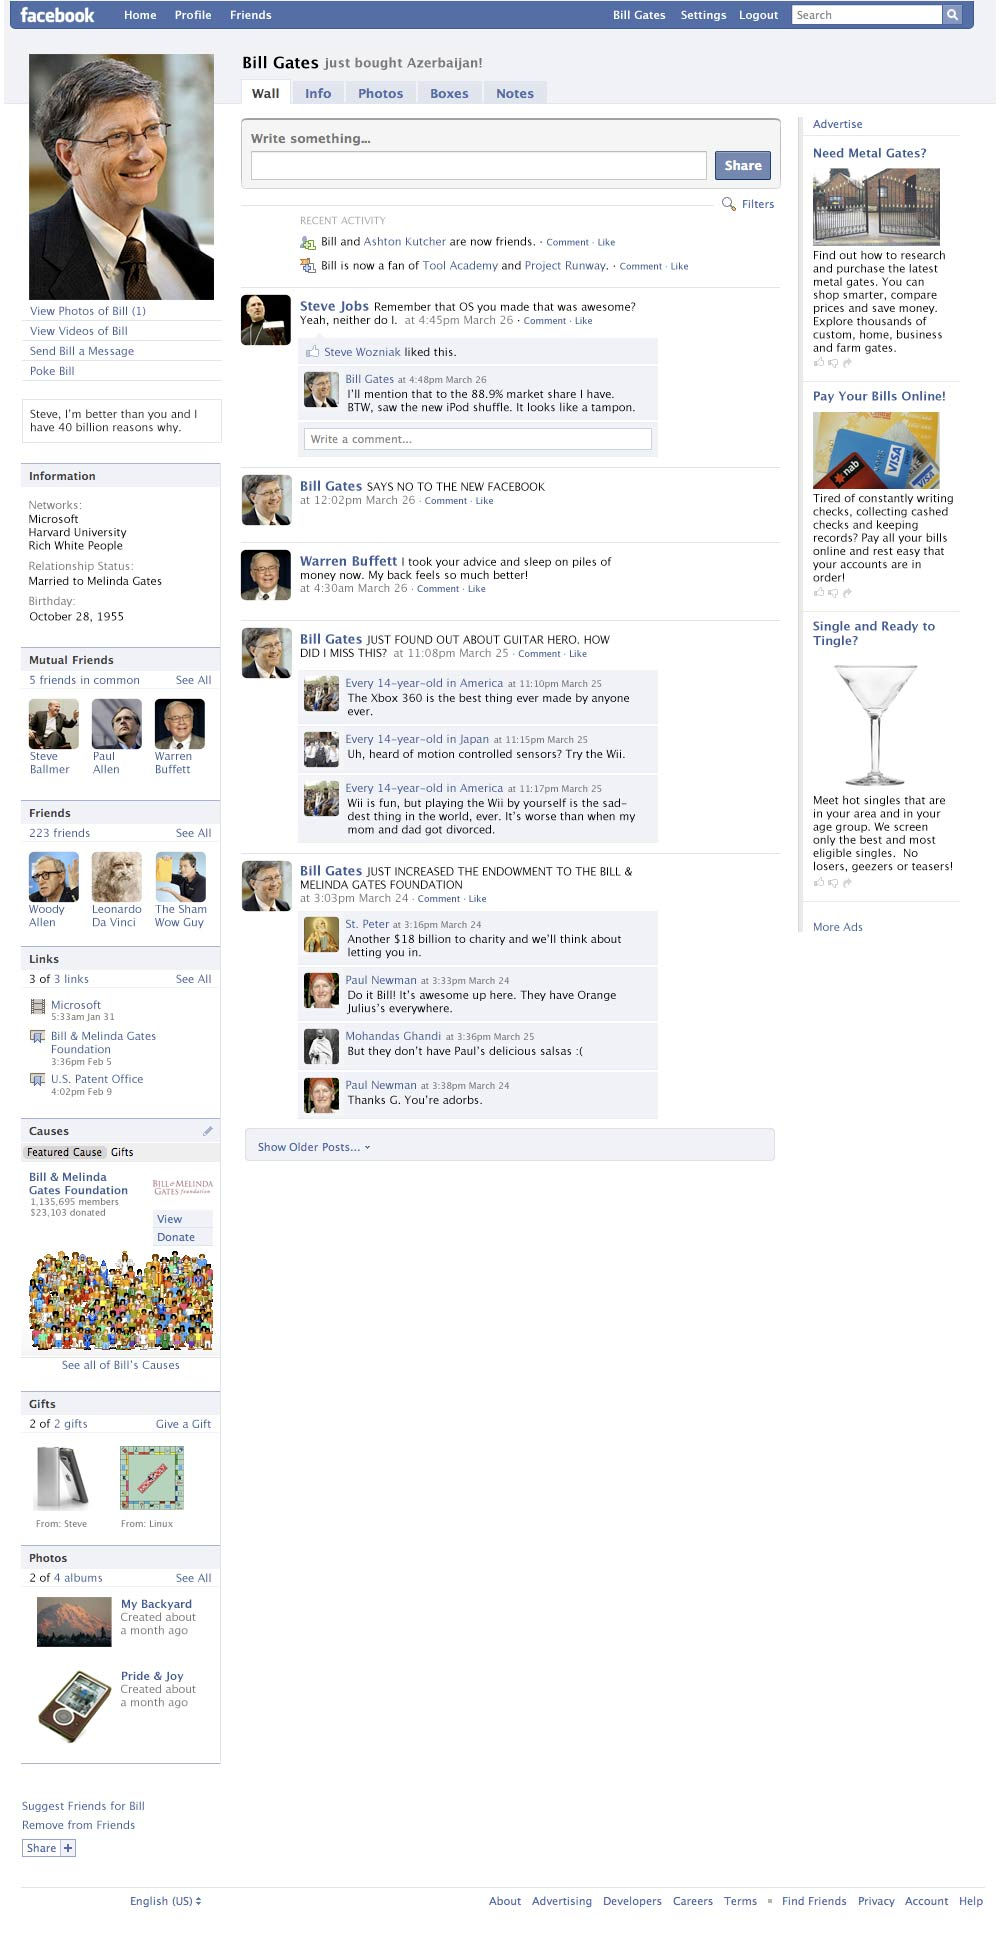 Bill Gates' Facebook Profile